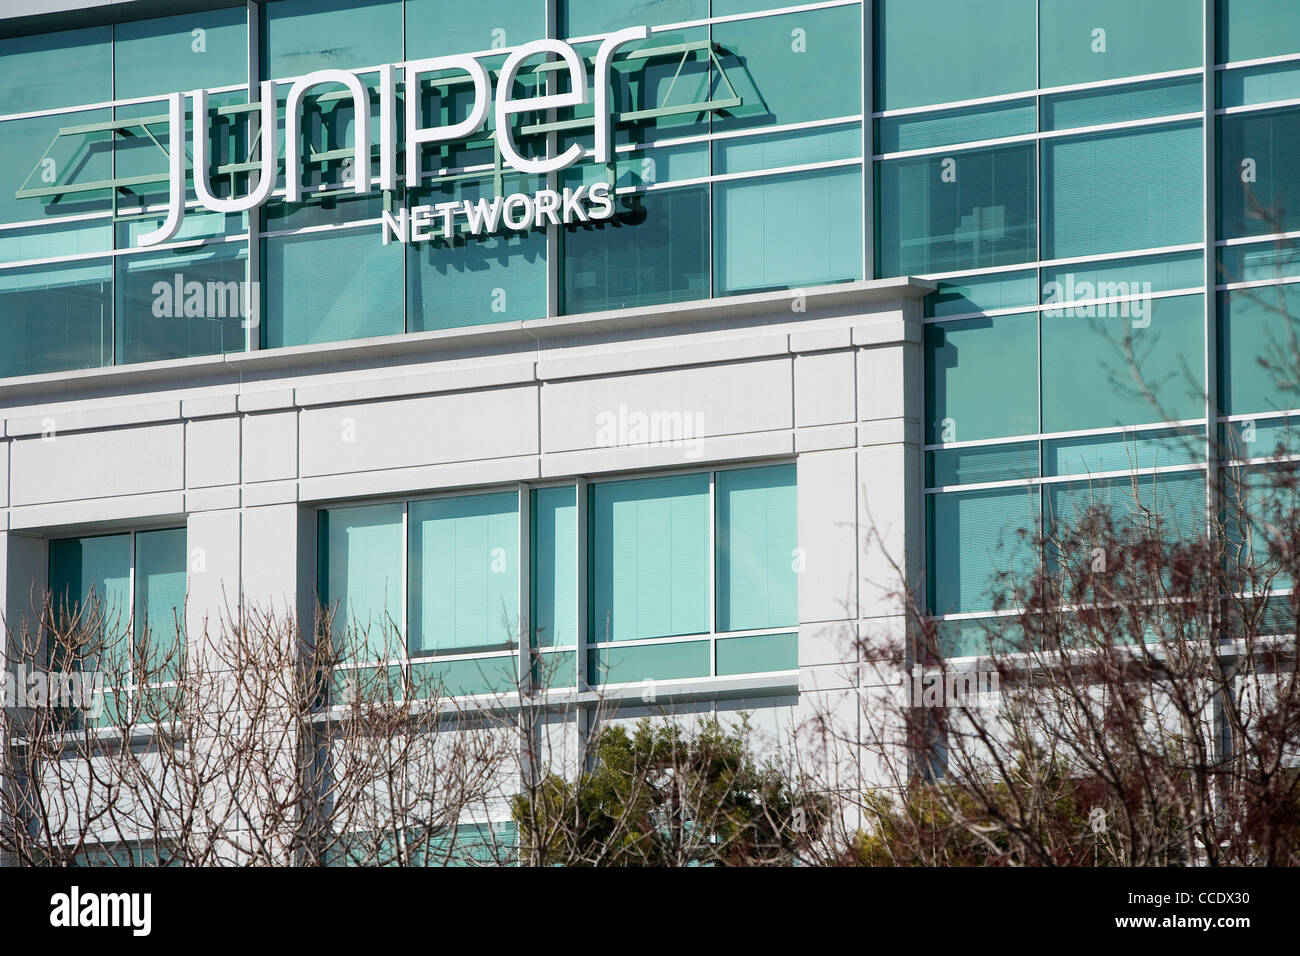 The headquarters of Juniper Networks Stock Photo: 42102452 - Alamy